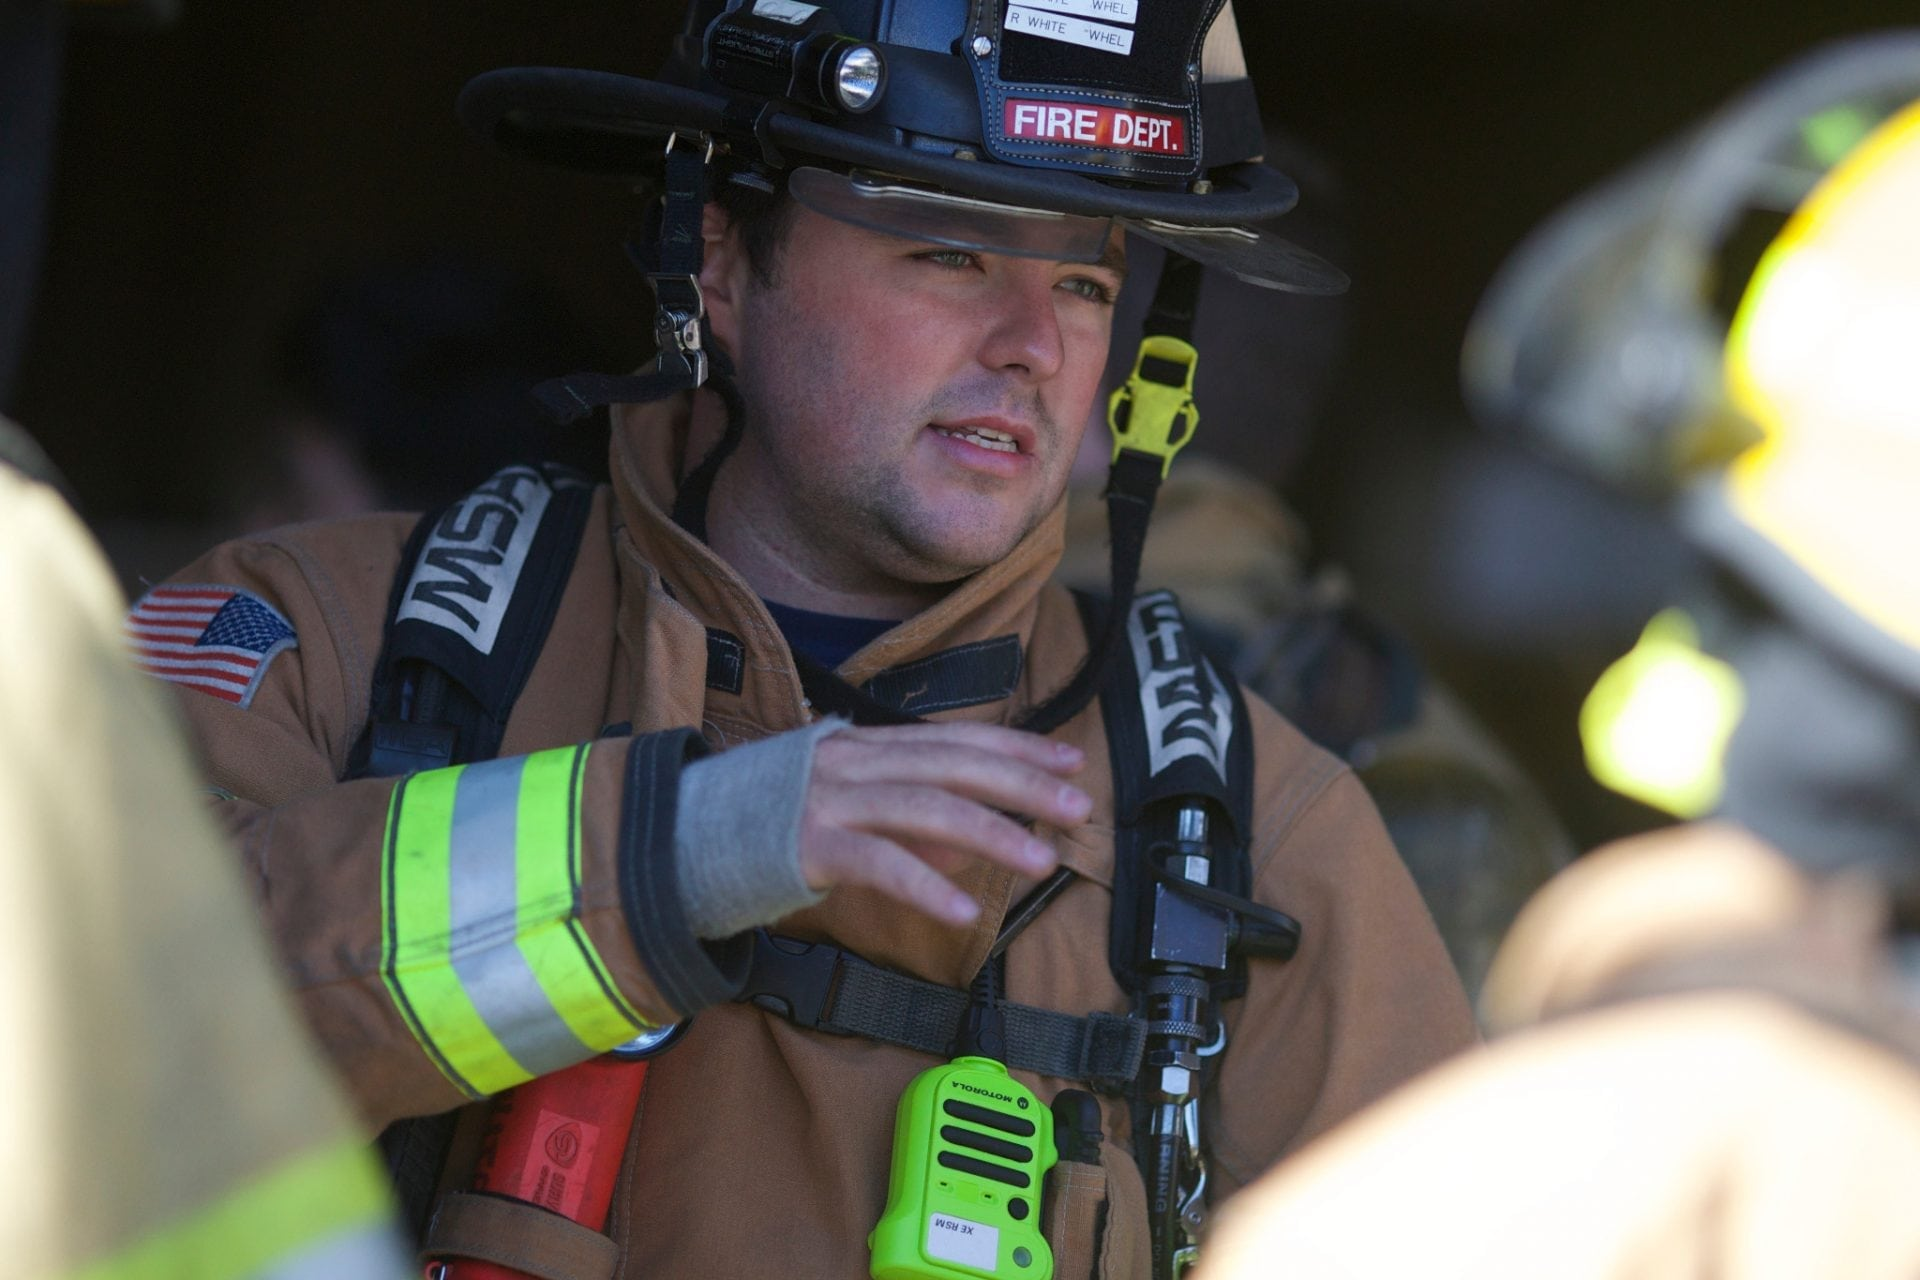 Motorola_Two_Way_Radios_Grand_Rapids_fire_EMS